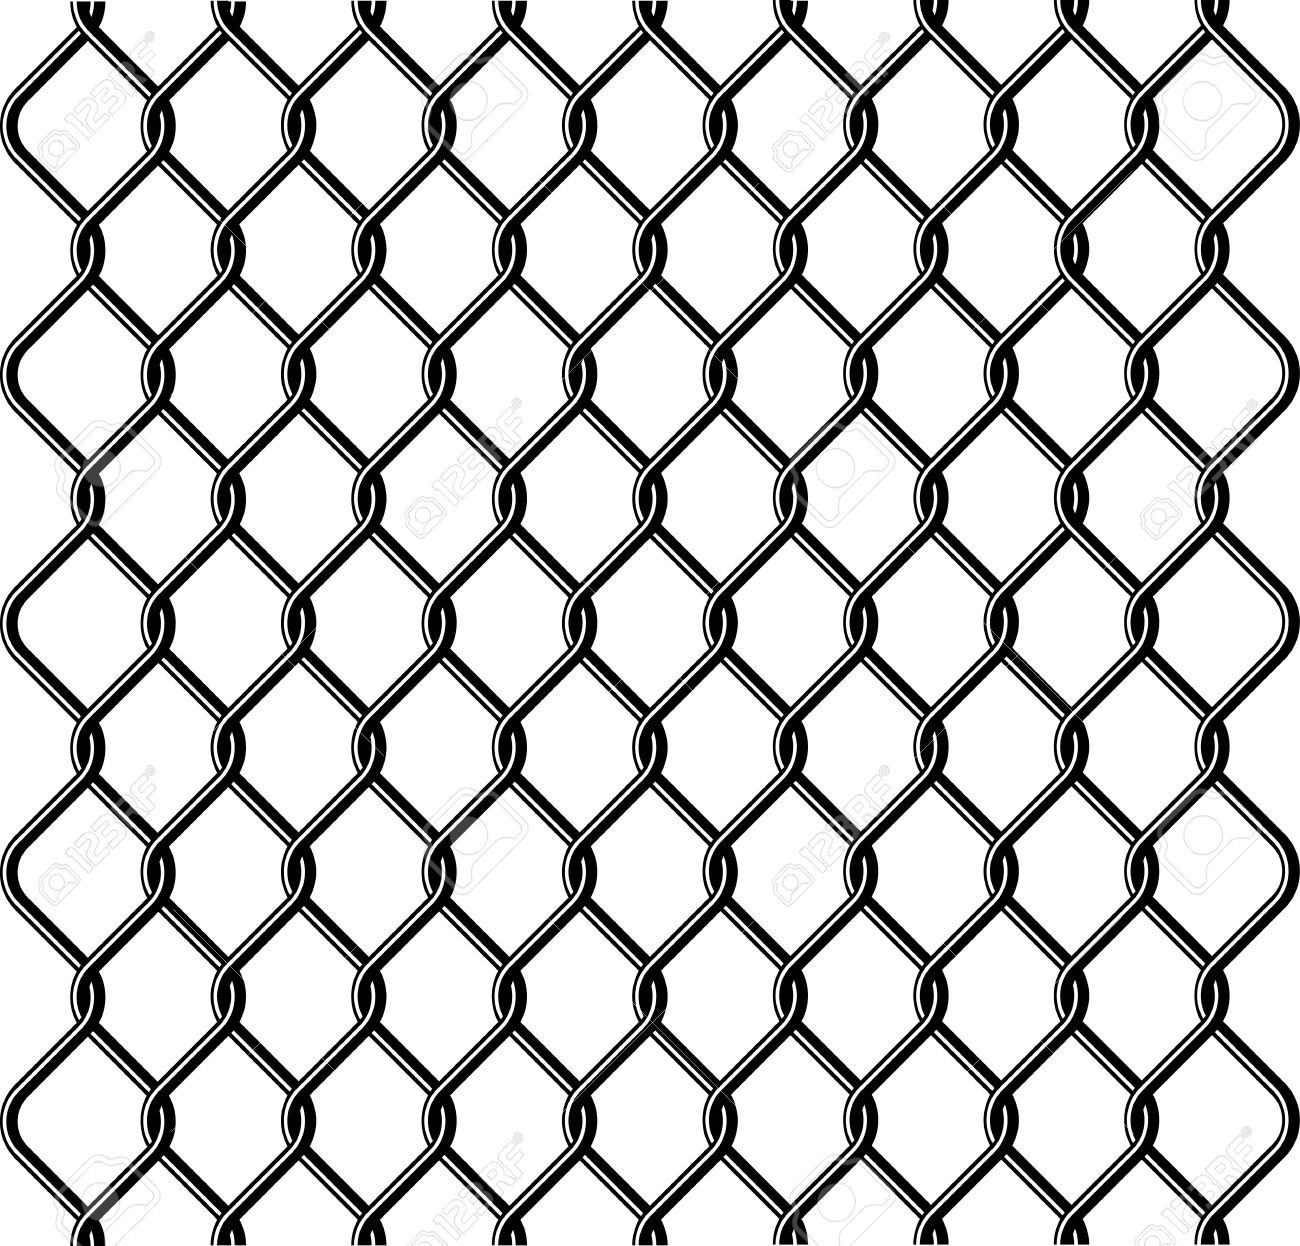 Chain Link Fence Texture Royalty Free Cliparts, Vectors, And Stock ...